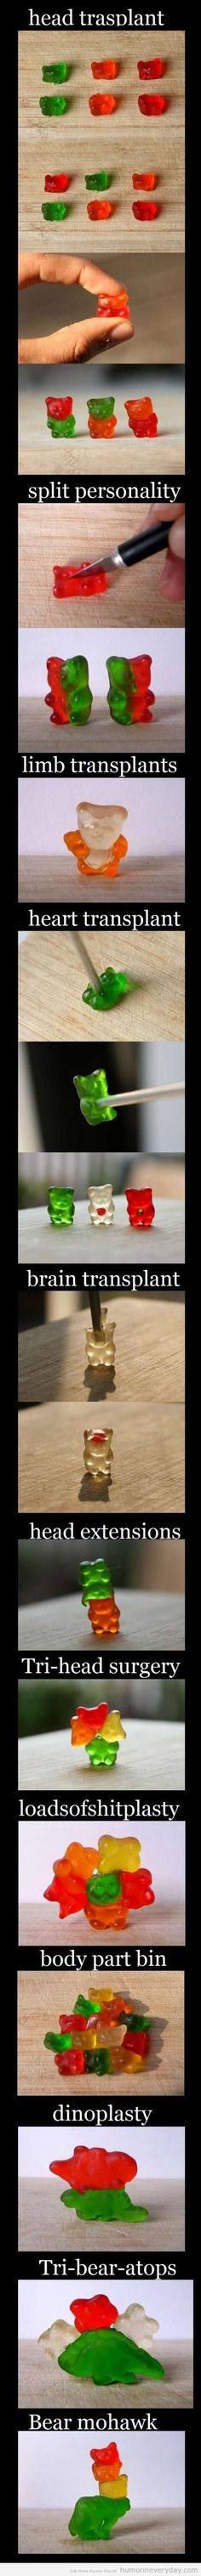 gummy bear transplant.  I now have a new purpose in life